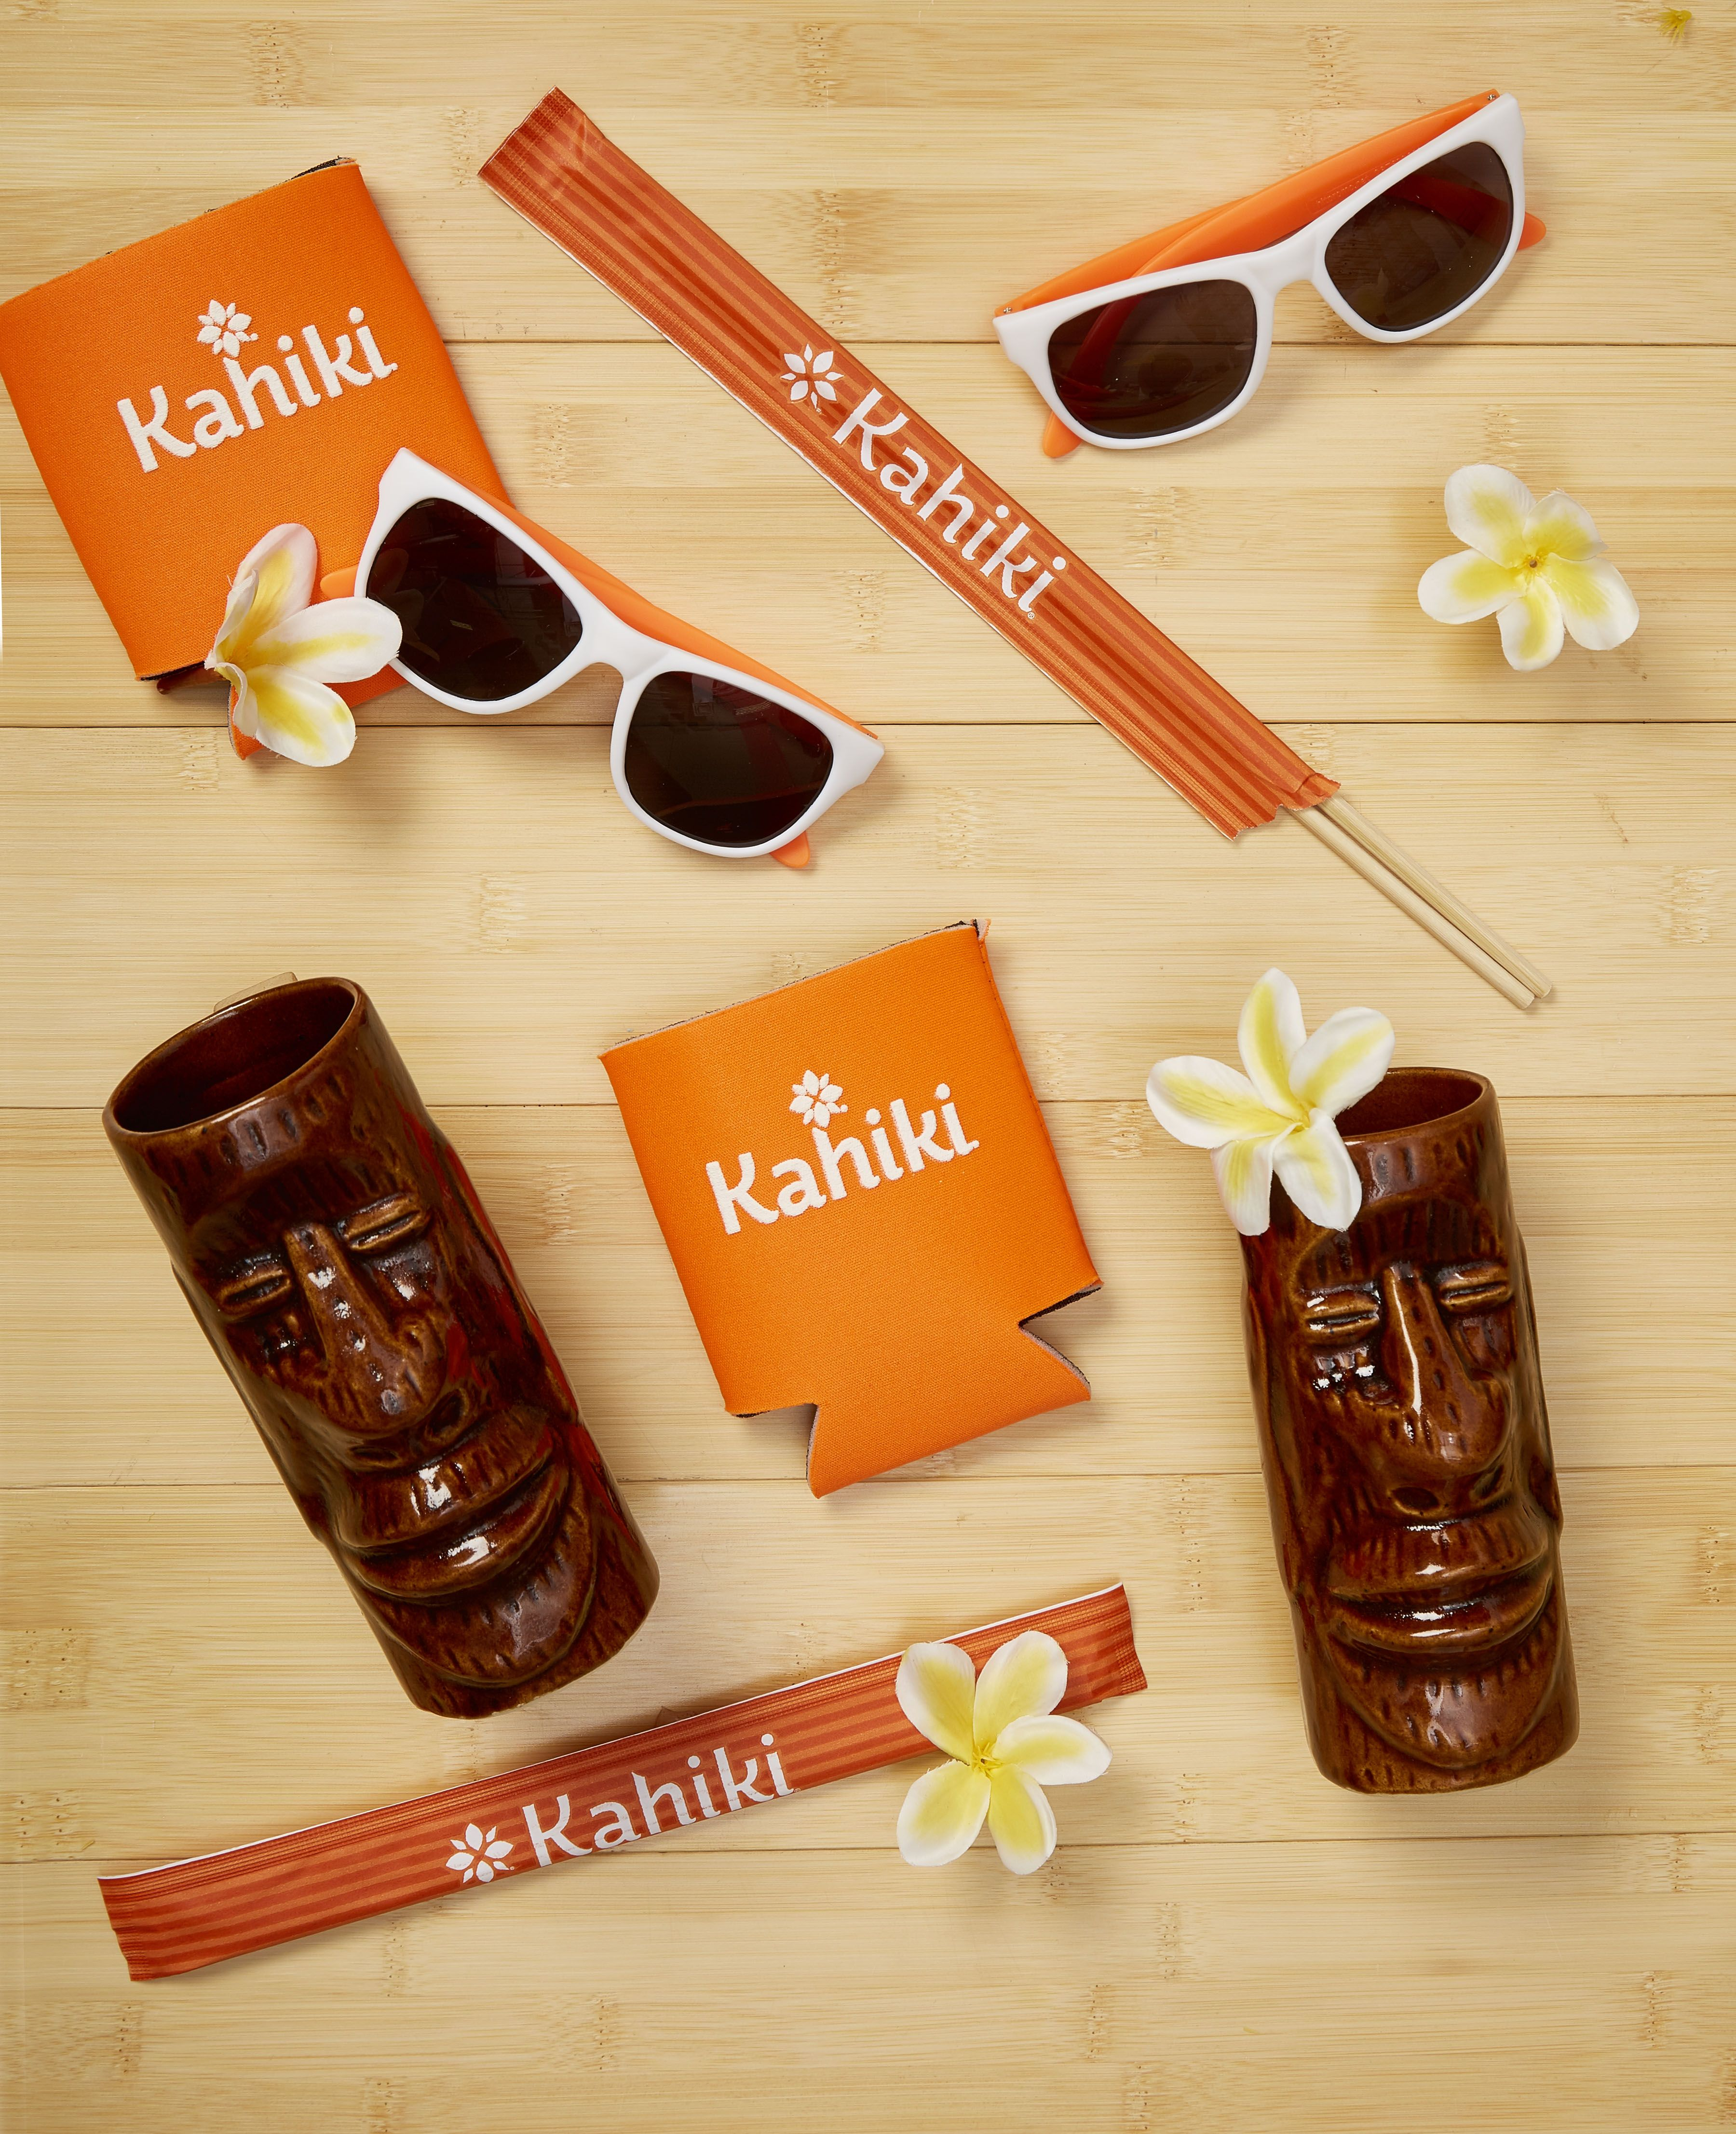 """Kahiki means, """"To Travel to a faraway place"""" and with this"""